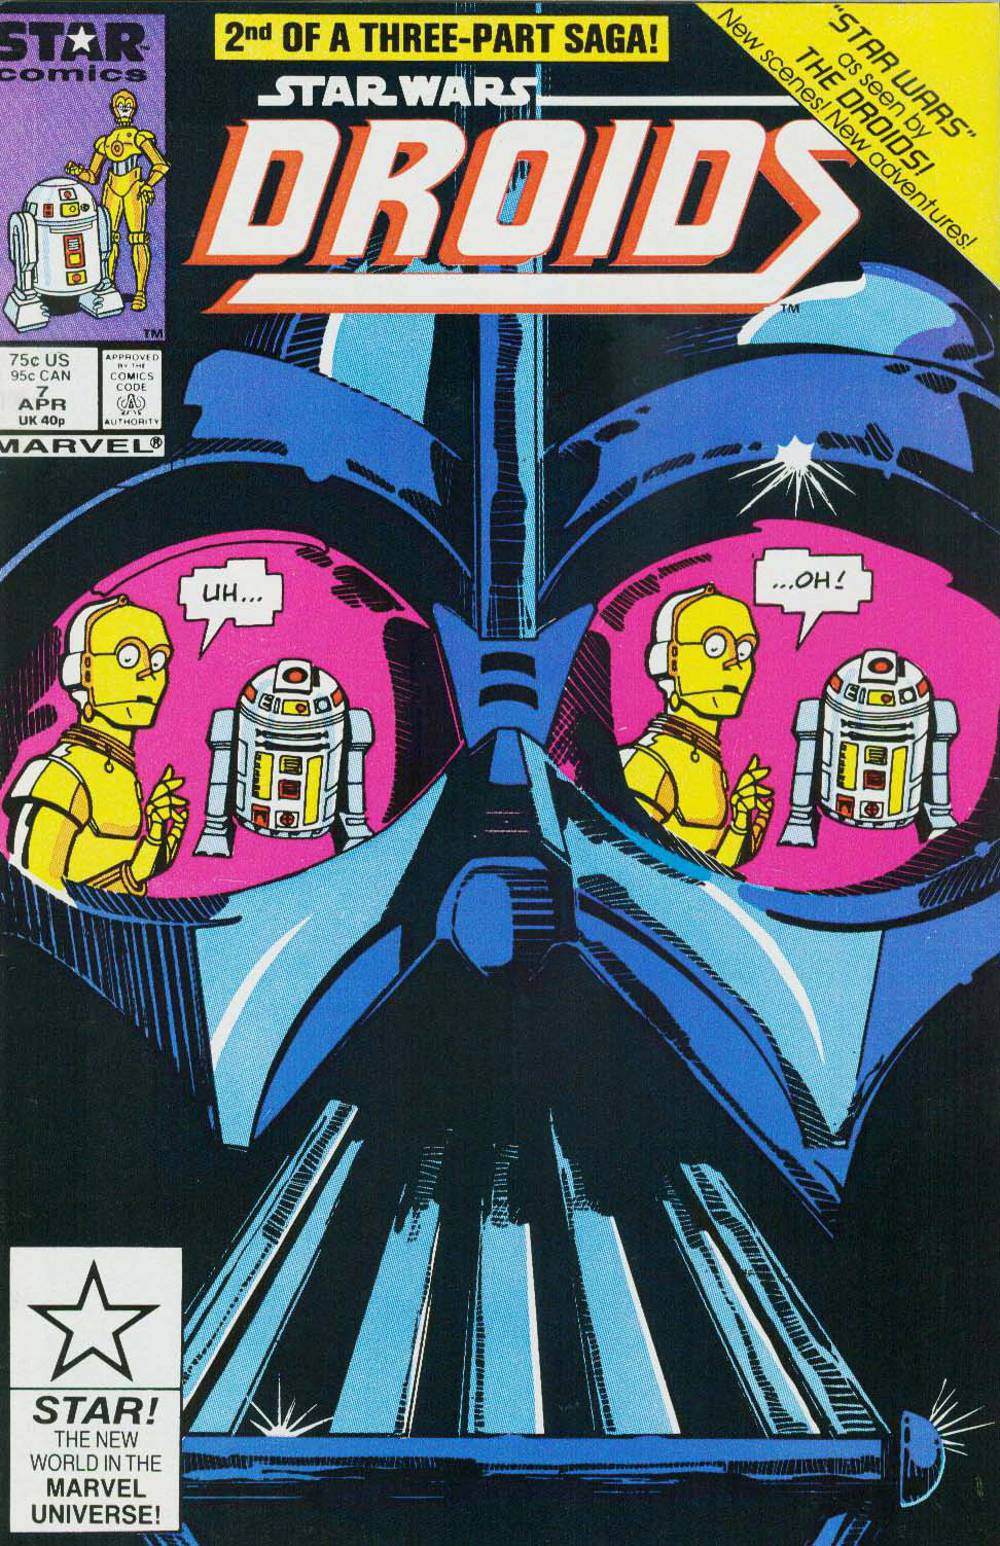 Droids #7 - Star Wars According to the Droids, Part 2